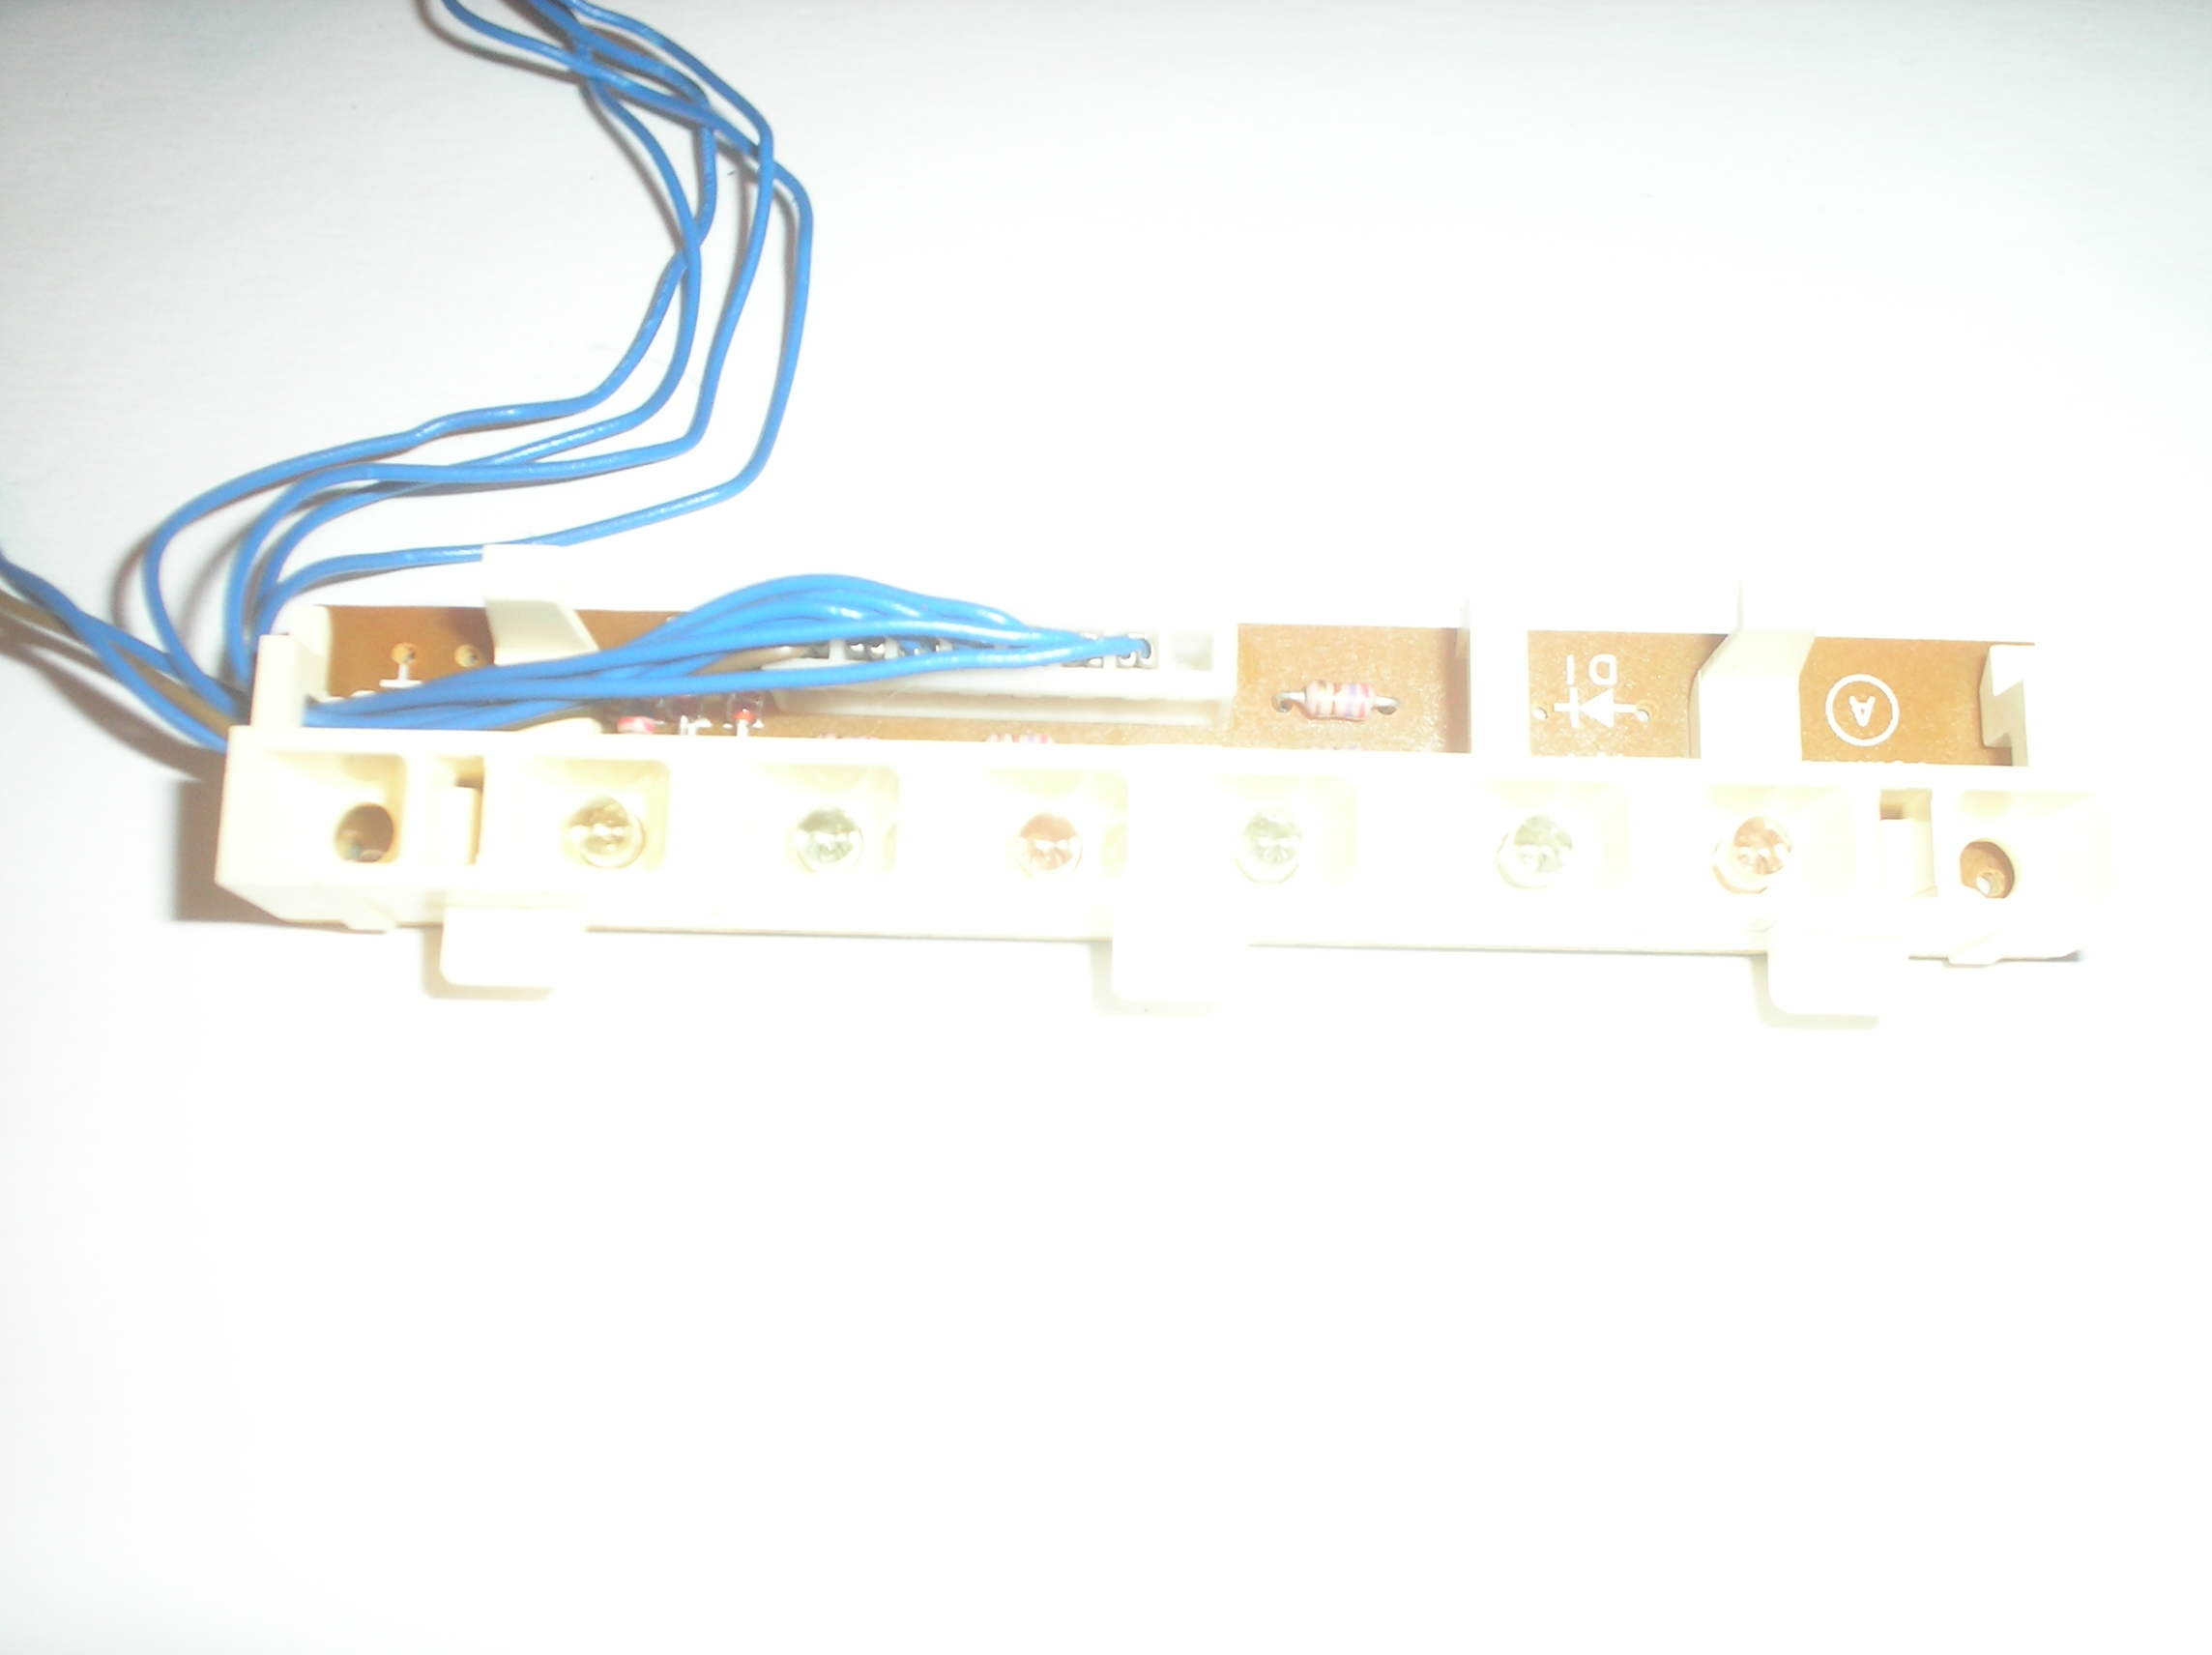 RS-T230 Cassette Deck A Tape Indicator Board Assy.  item is used.Technics part number is SLNST230-KM Led Block Assy